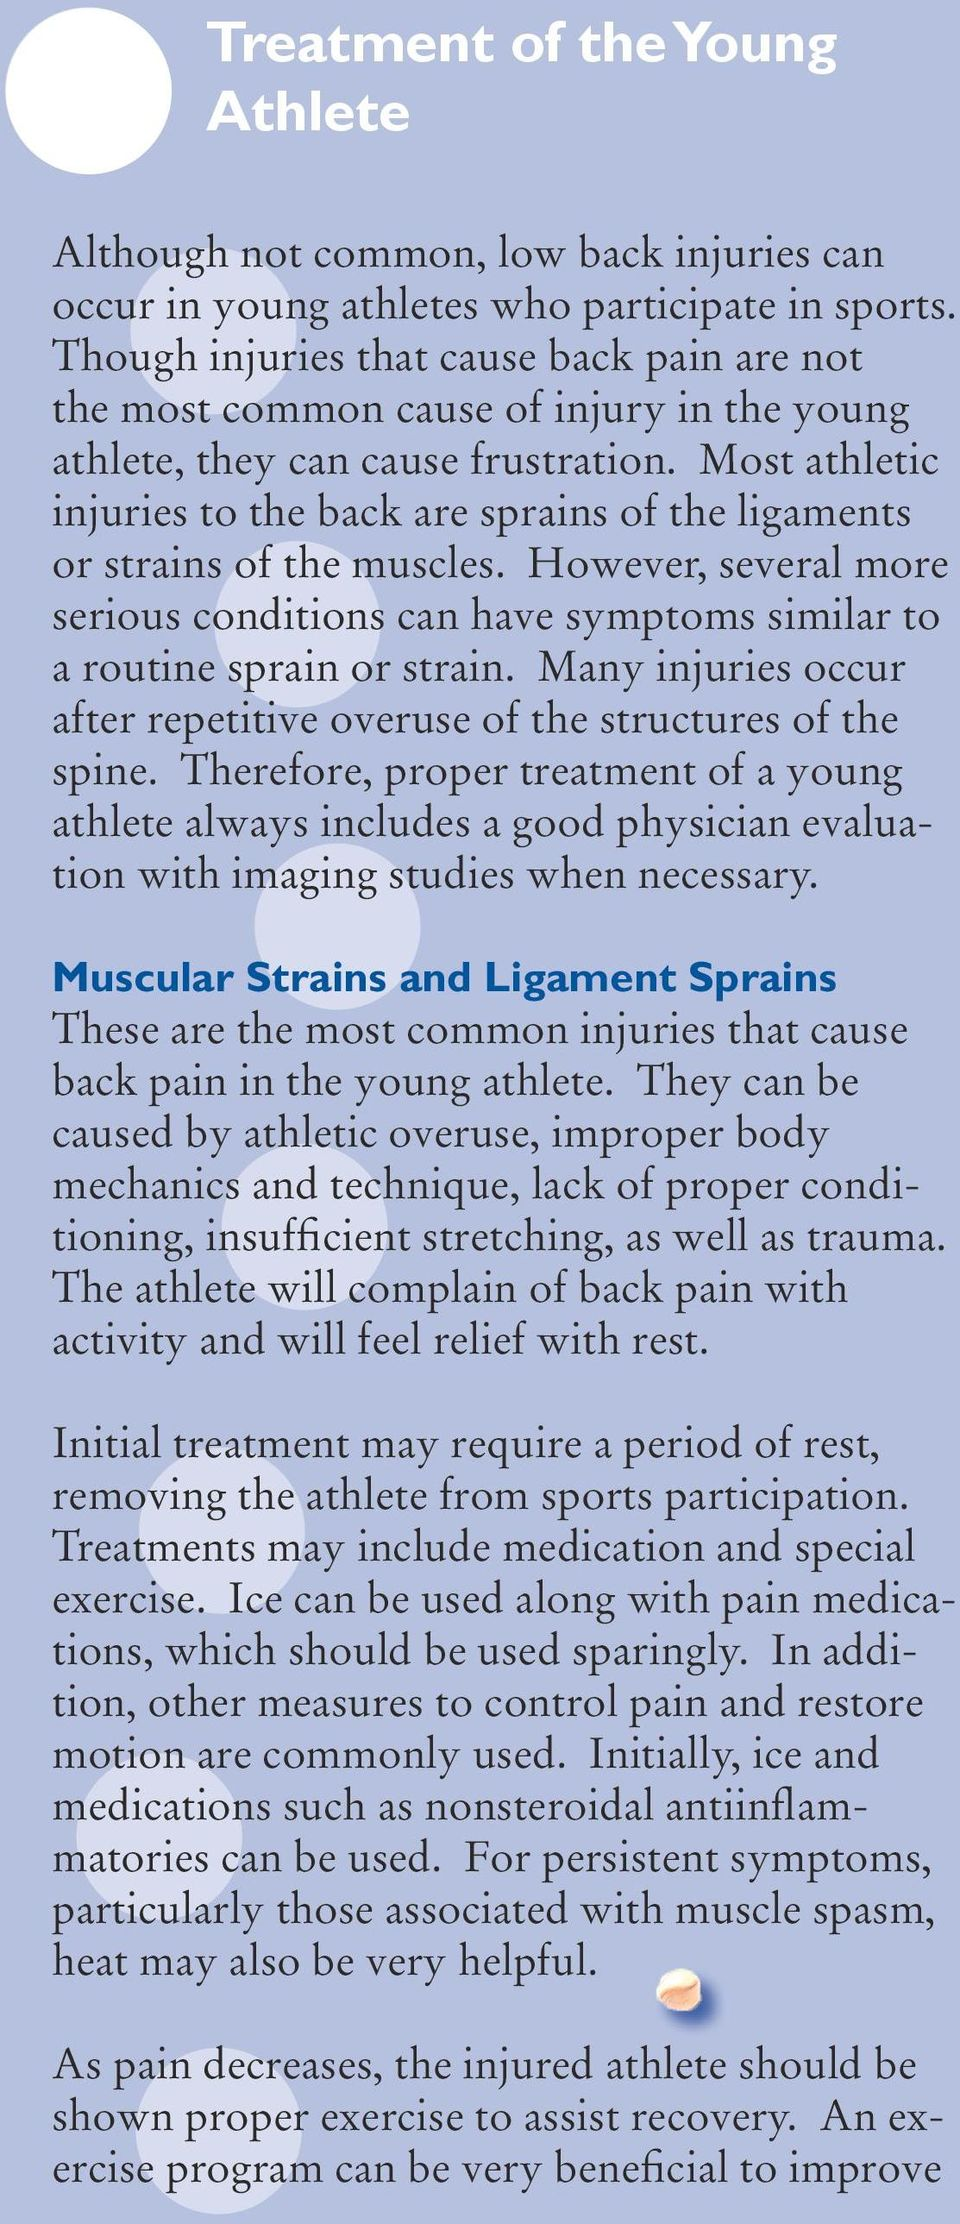 Most athletic injuries to the back are sprains of the ligaments or strains of the muscles. However, several more serious conditions can have symptoms similar to a routine sprain or strain.